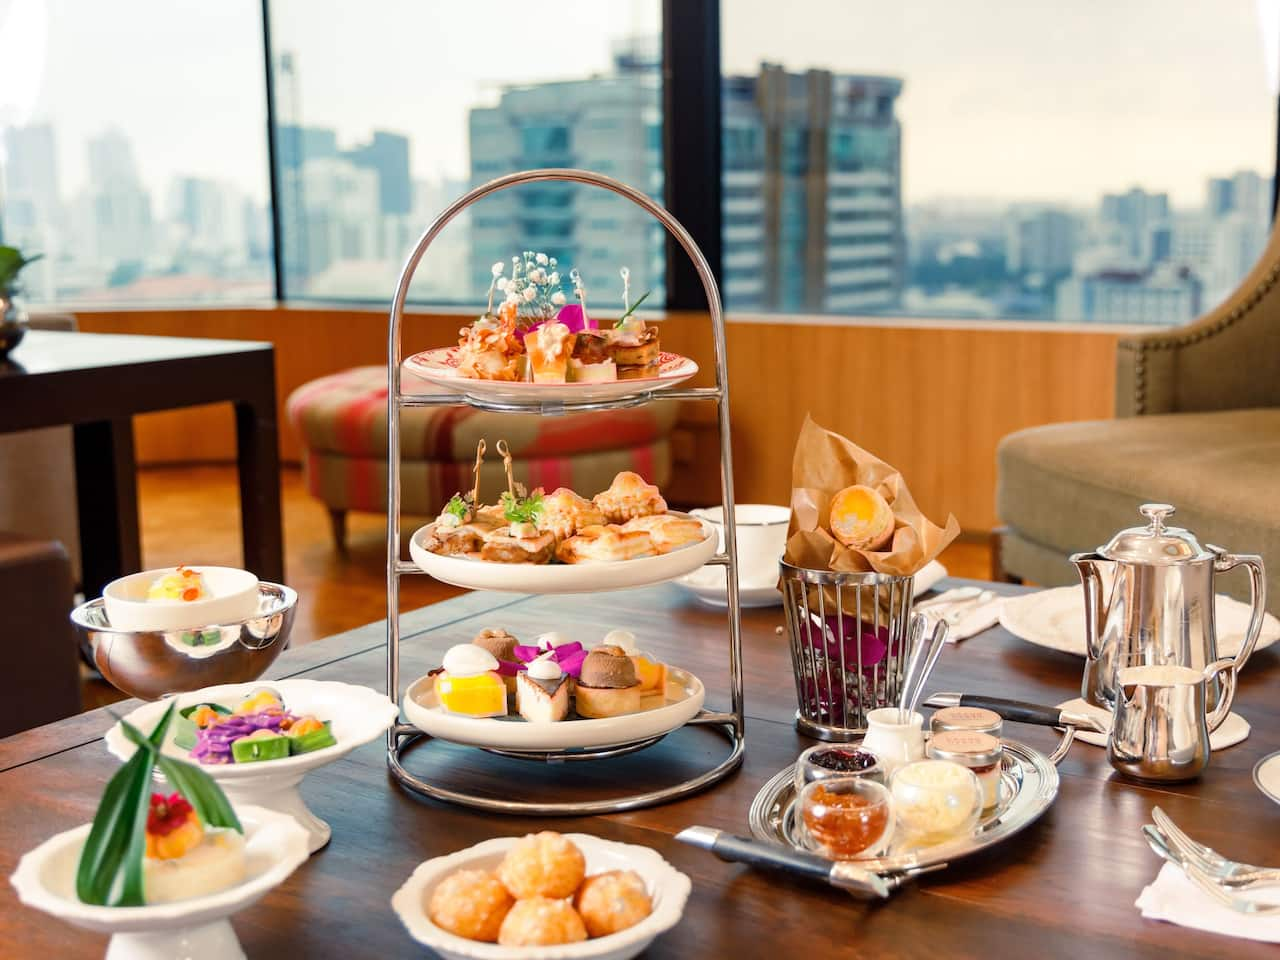 Afternoon Tea set at Grand Hyatt Erawan Bangkok